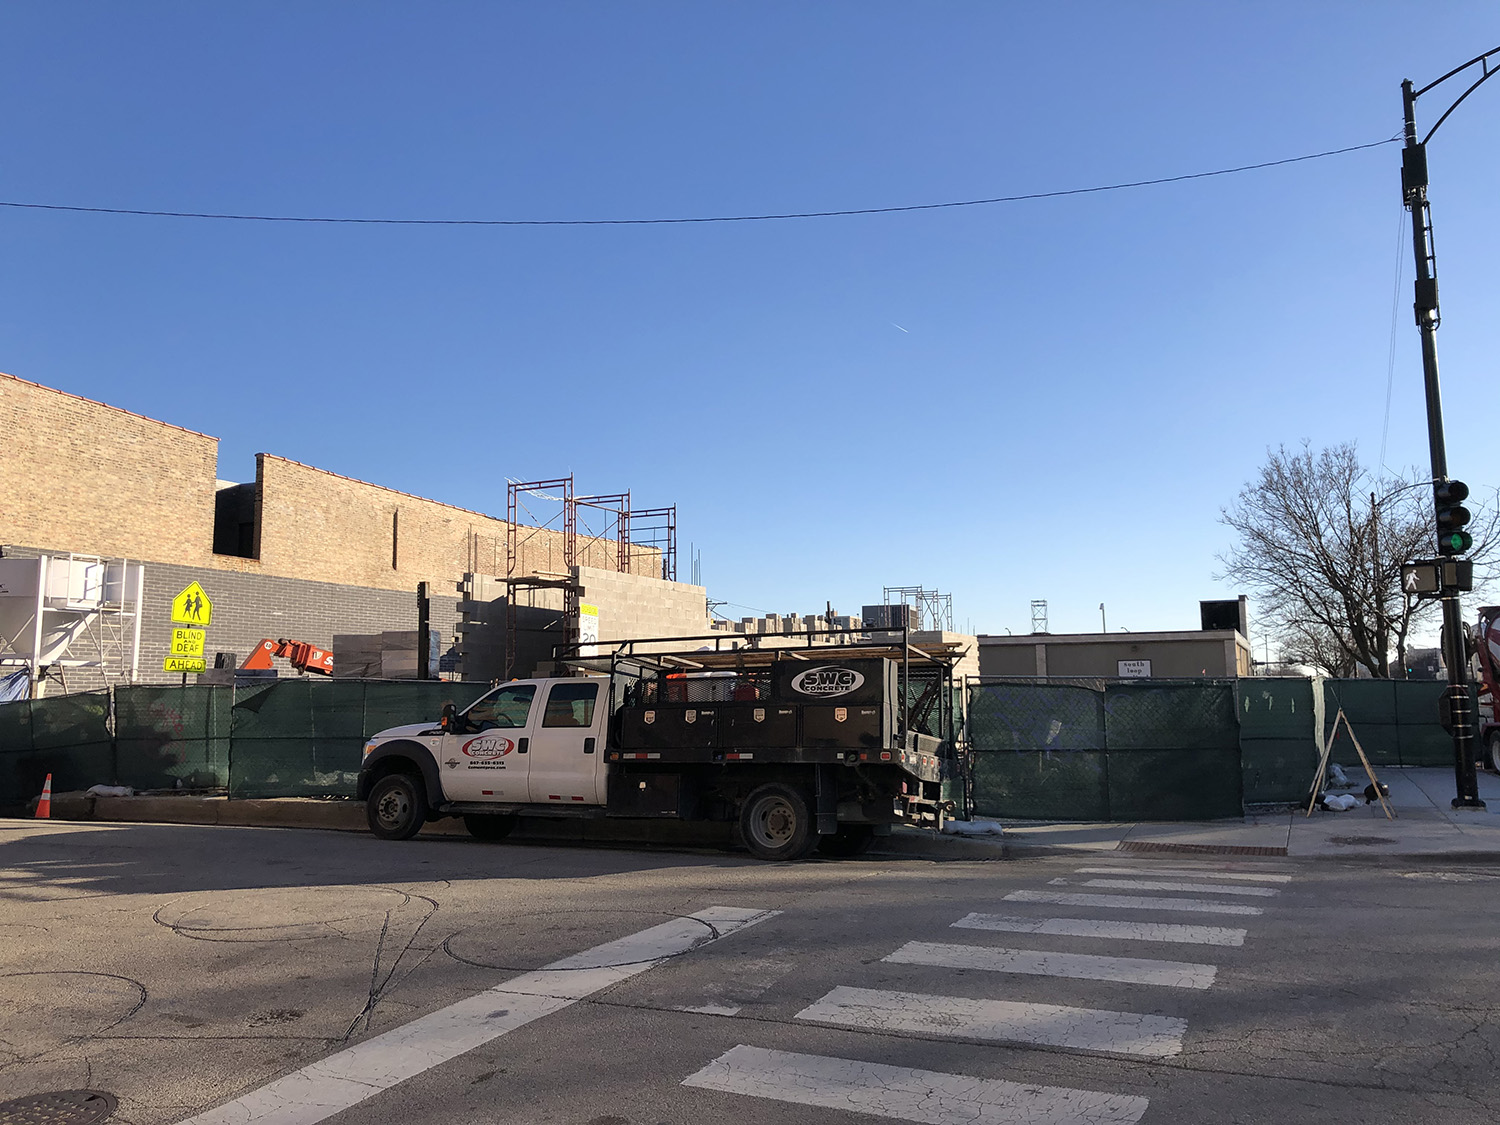 Construction at 2401 S State Street. Image by Lukas Kugler